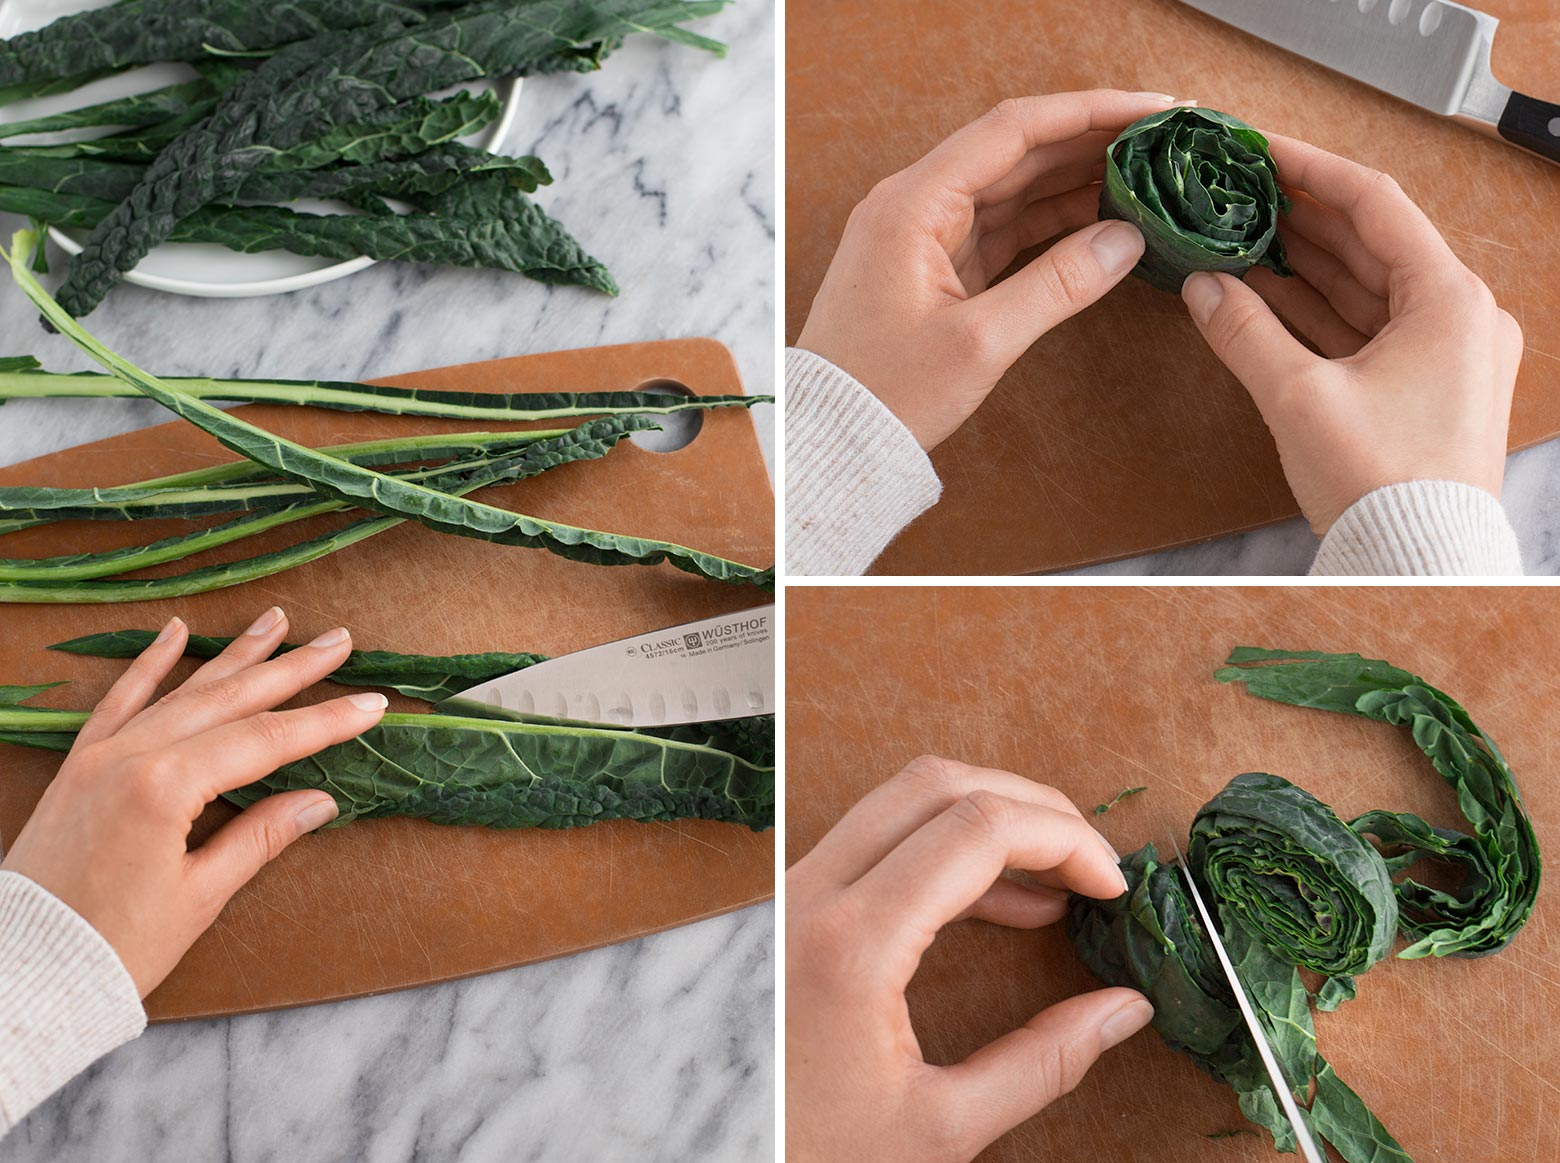 Shows how to de-stem Lacinato kale